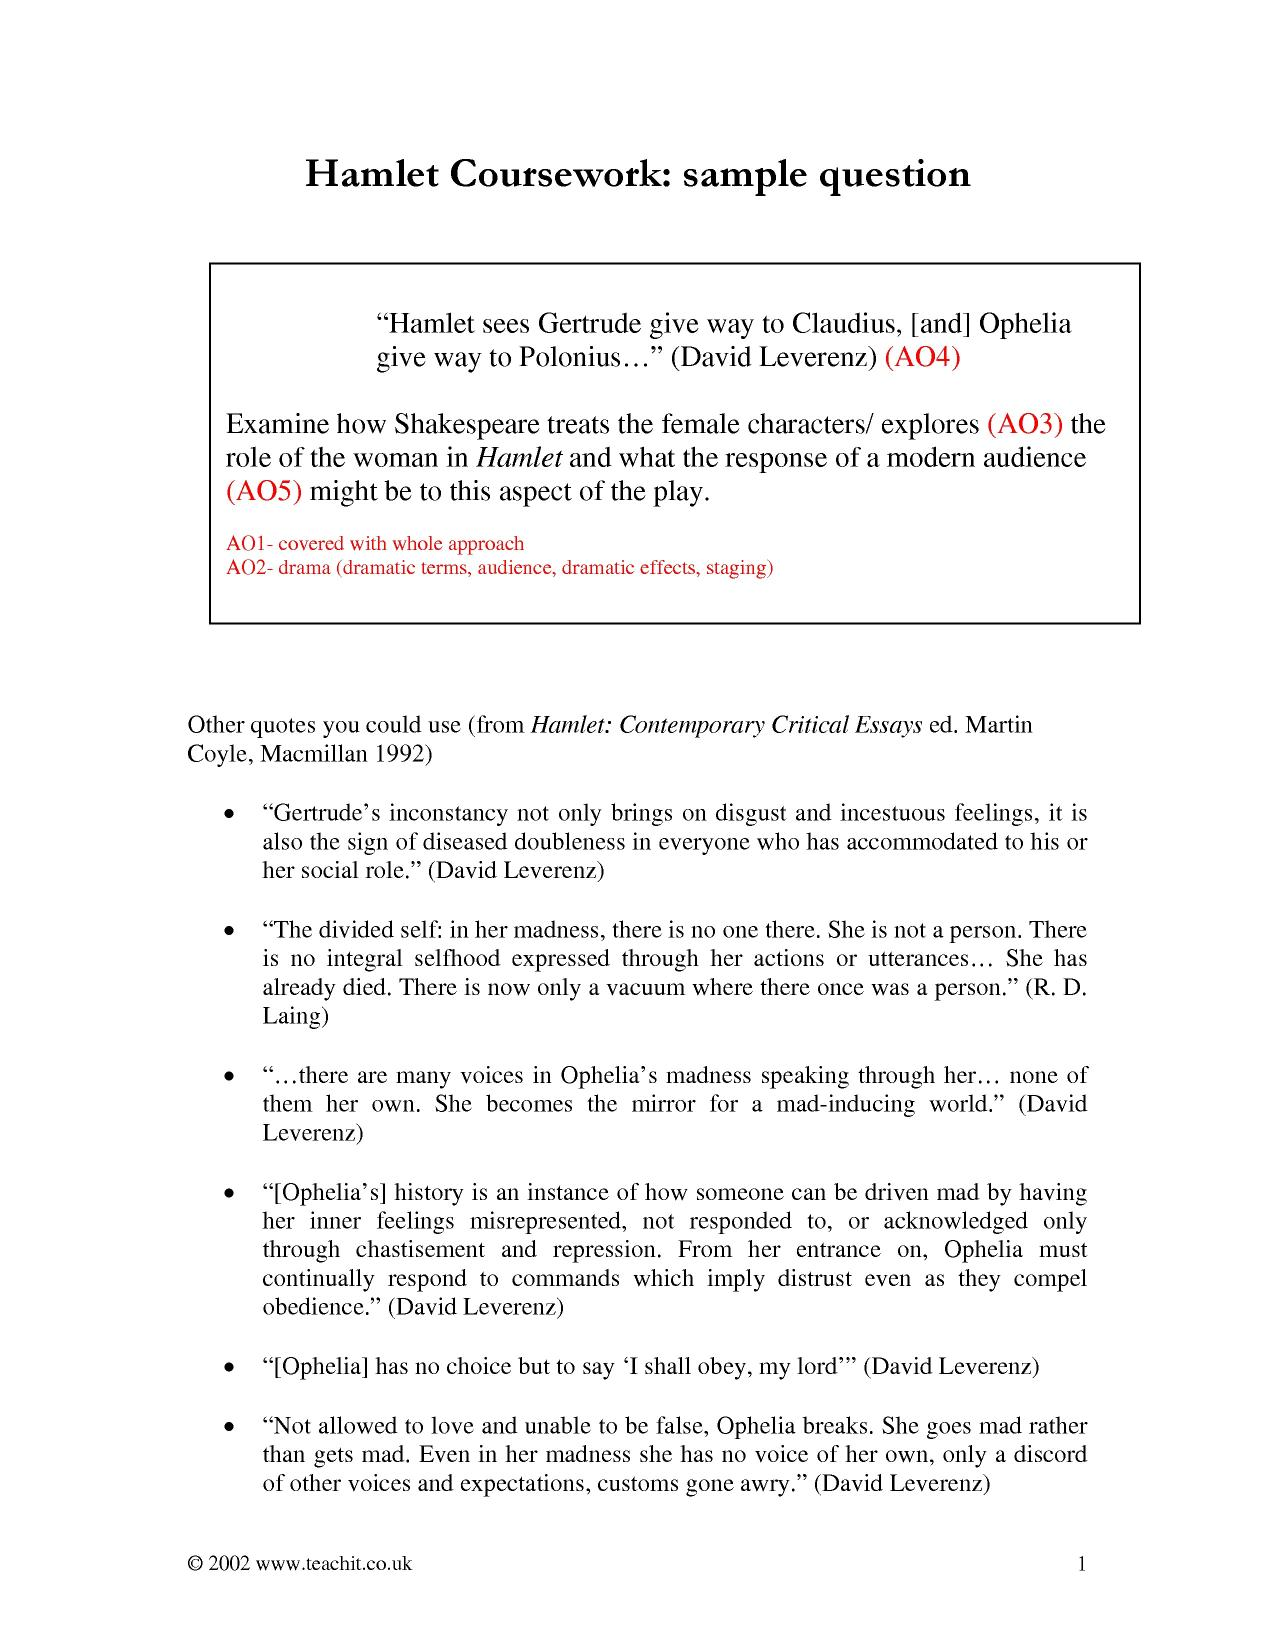 a psycho analysis of william shakespeares hamlet Hamlet shows shakespeare intent on sabotaging the conventions of revenge  tragedy  article by: kiernan ryan themes: power, politics and religion,  tragedies  convulsed with simulated sorrow for an imaginary character, who   the prince in his influential study shakespearean tragedy as afflicted by.